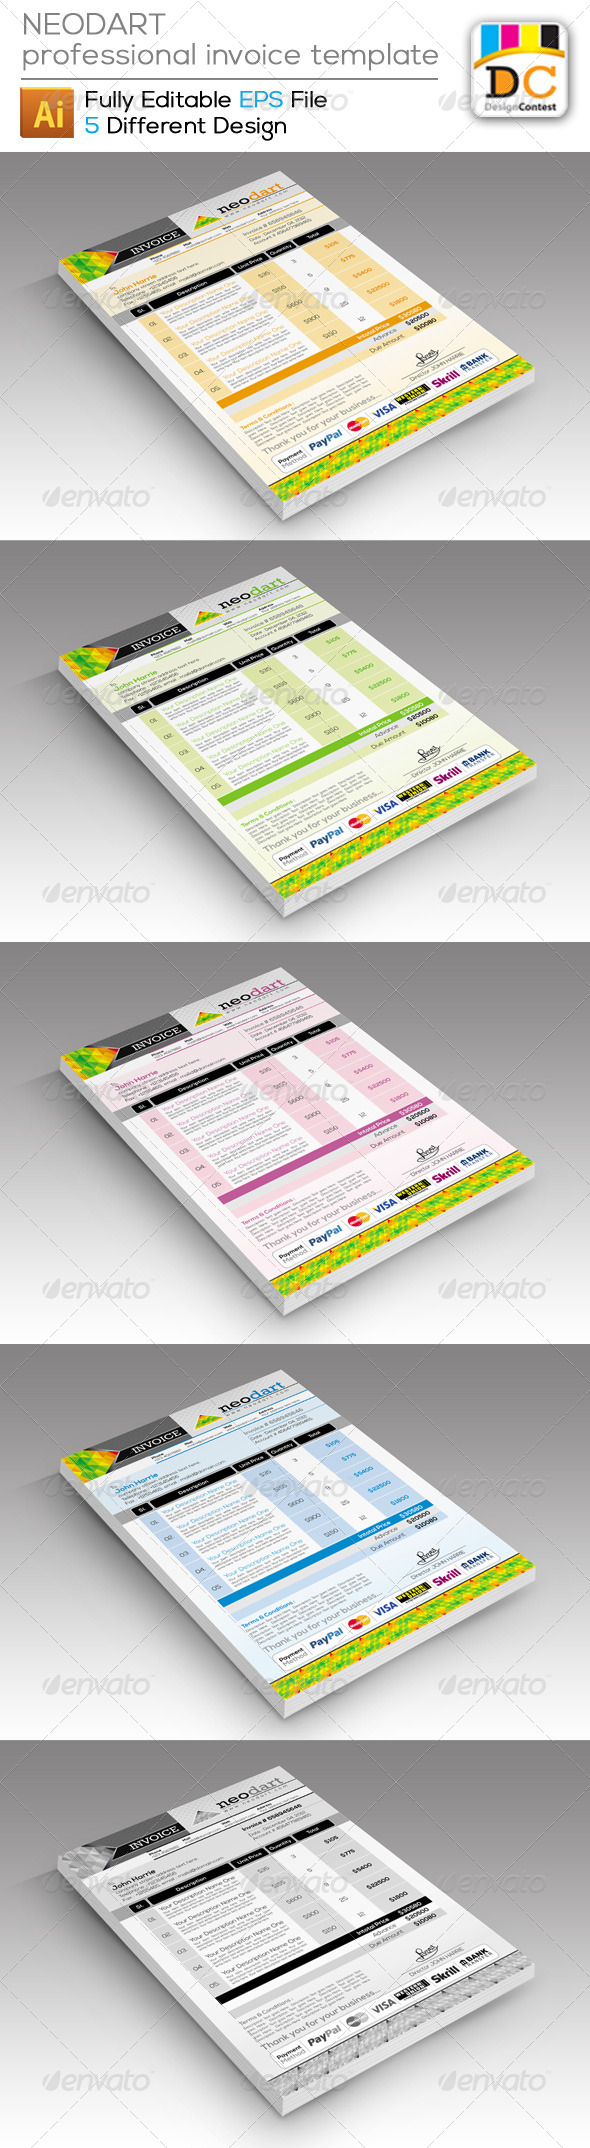 Invoices And Estimates Pro Neovertcorporate Creative Invoices By Contestdesign  Graphicriver Invoice Template Design Word with Labor Invoice Template Excel Neovertcorporate Creative Invoices  Proposals  Invoices Stationery Whats An Invoice Pdf